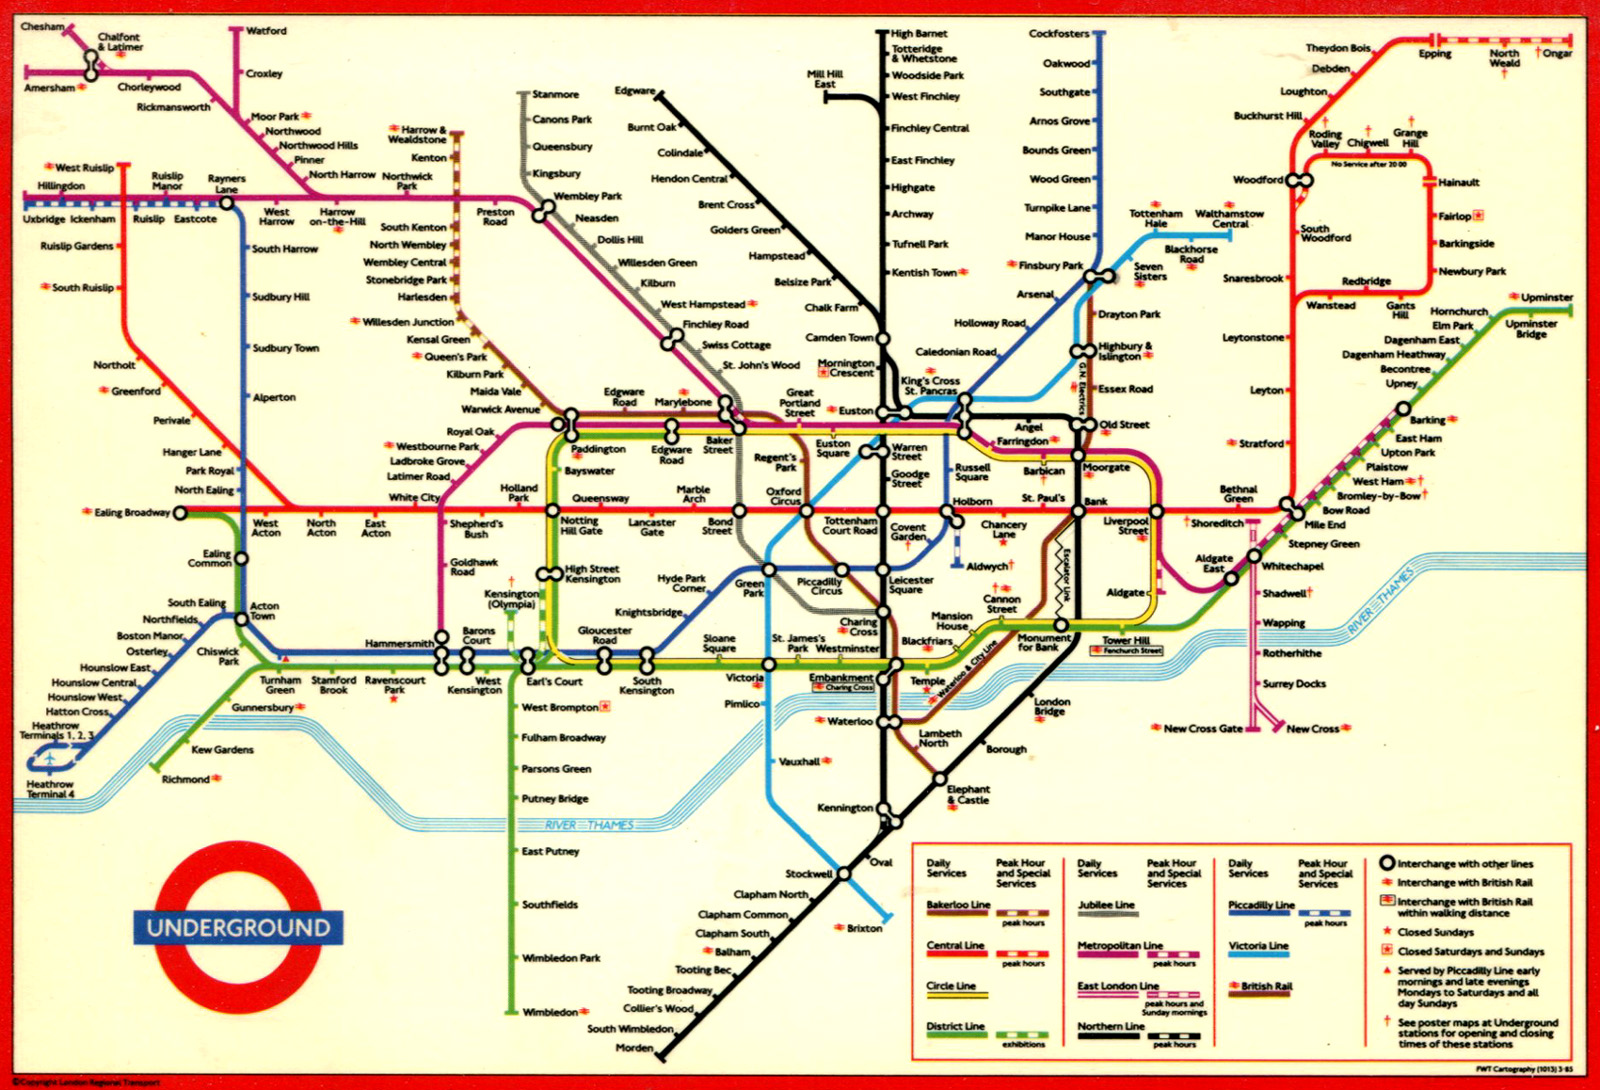 Printable London Subway Map.A Side Effect Of London S Bakerloo Tube Extension Easier Breathing